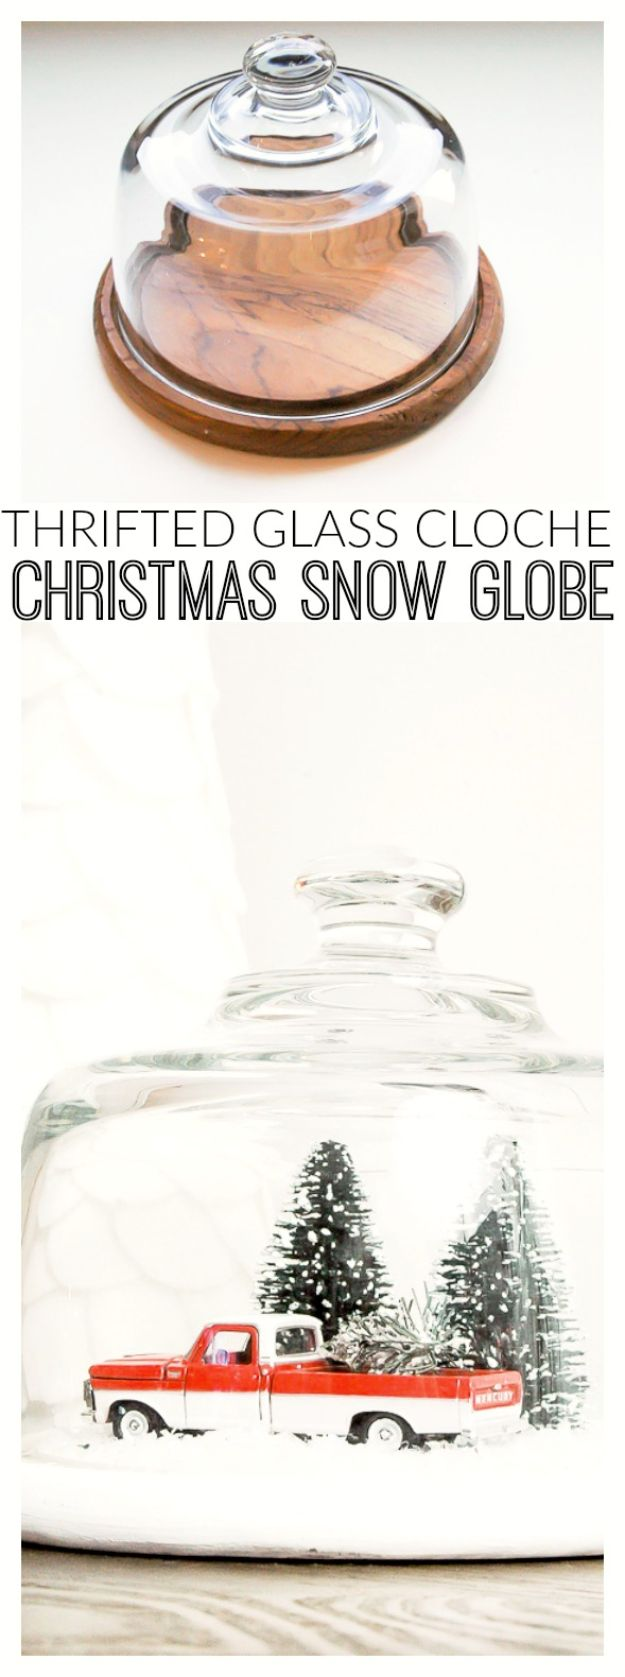 DIY Snow Globe Ideas - Thrifted Glass Cloche Turned Vintage Snow Globe - Easy Ideas To Make Snow Globes With Kids - Mason Jar, Picture, Ornament, Waterless Christmas Crafts - Cheap DYI Holiday Gift Ideas